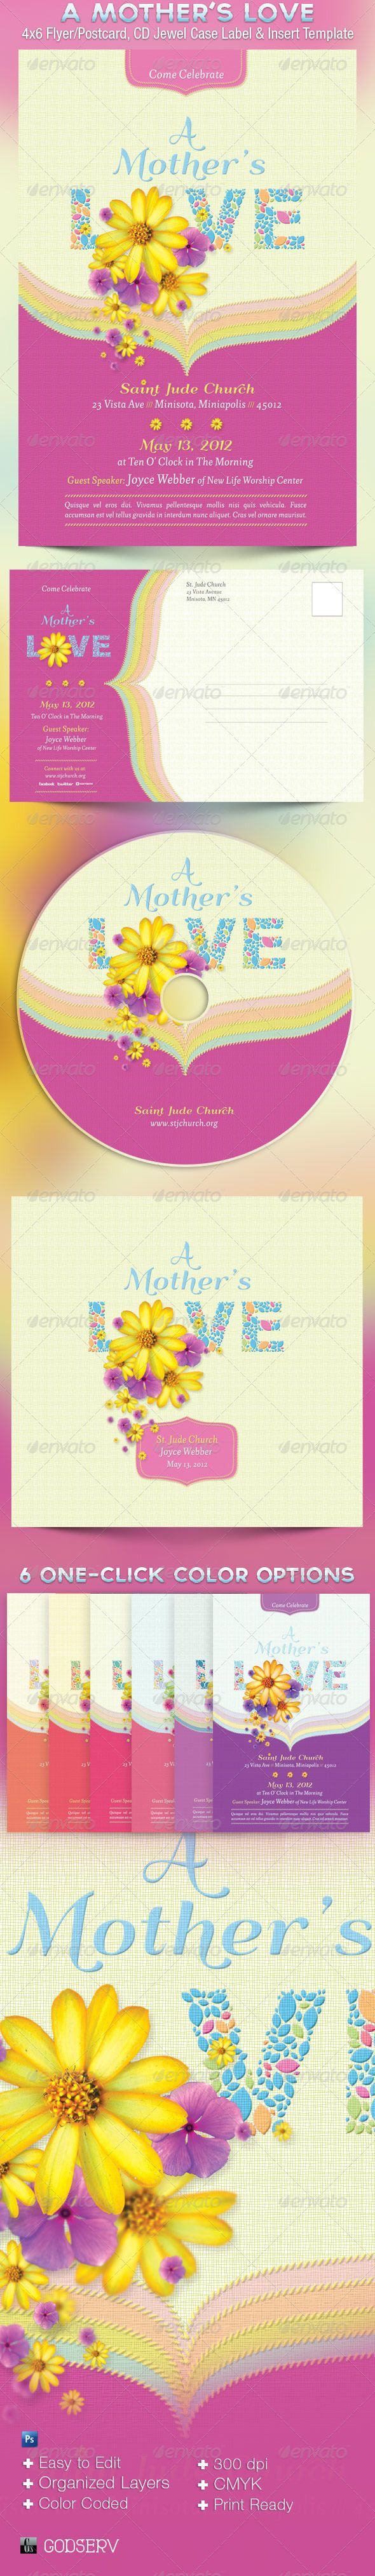 Mothers Love Flyer Postcard CD Template — Photoshop PSD #women #love • Available here → https://graphicriver.net/item/mothers-love-flyer-postcard-cd-template/2206547?ref=pxcr